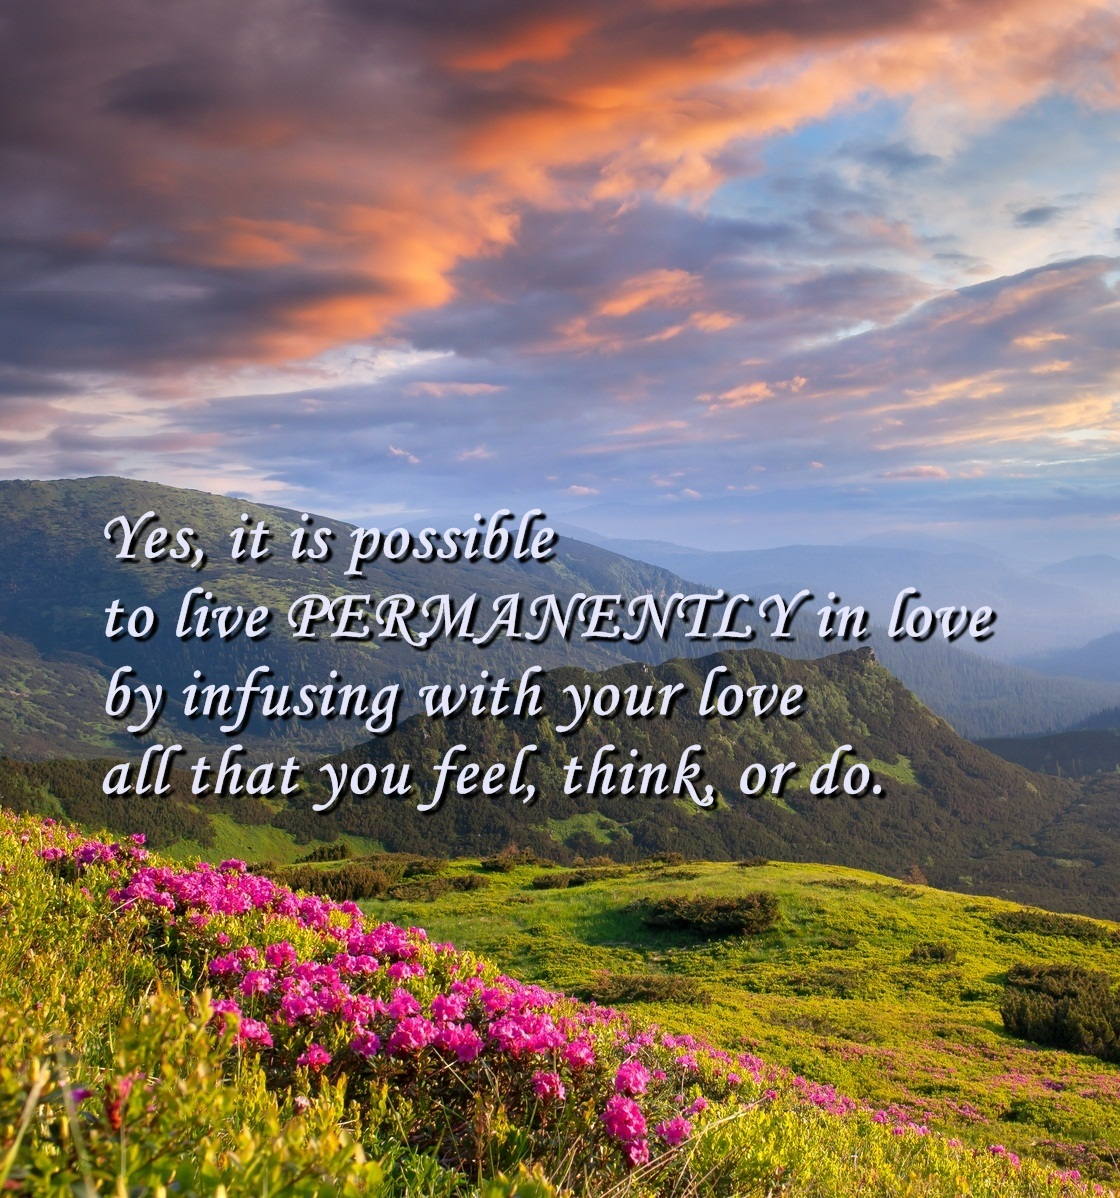 Inspirational Quotes About Positive: Inspirational Quotes About Springtime. QuotesGram